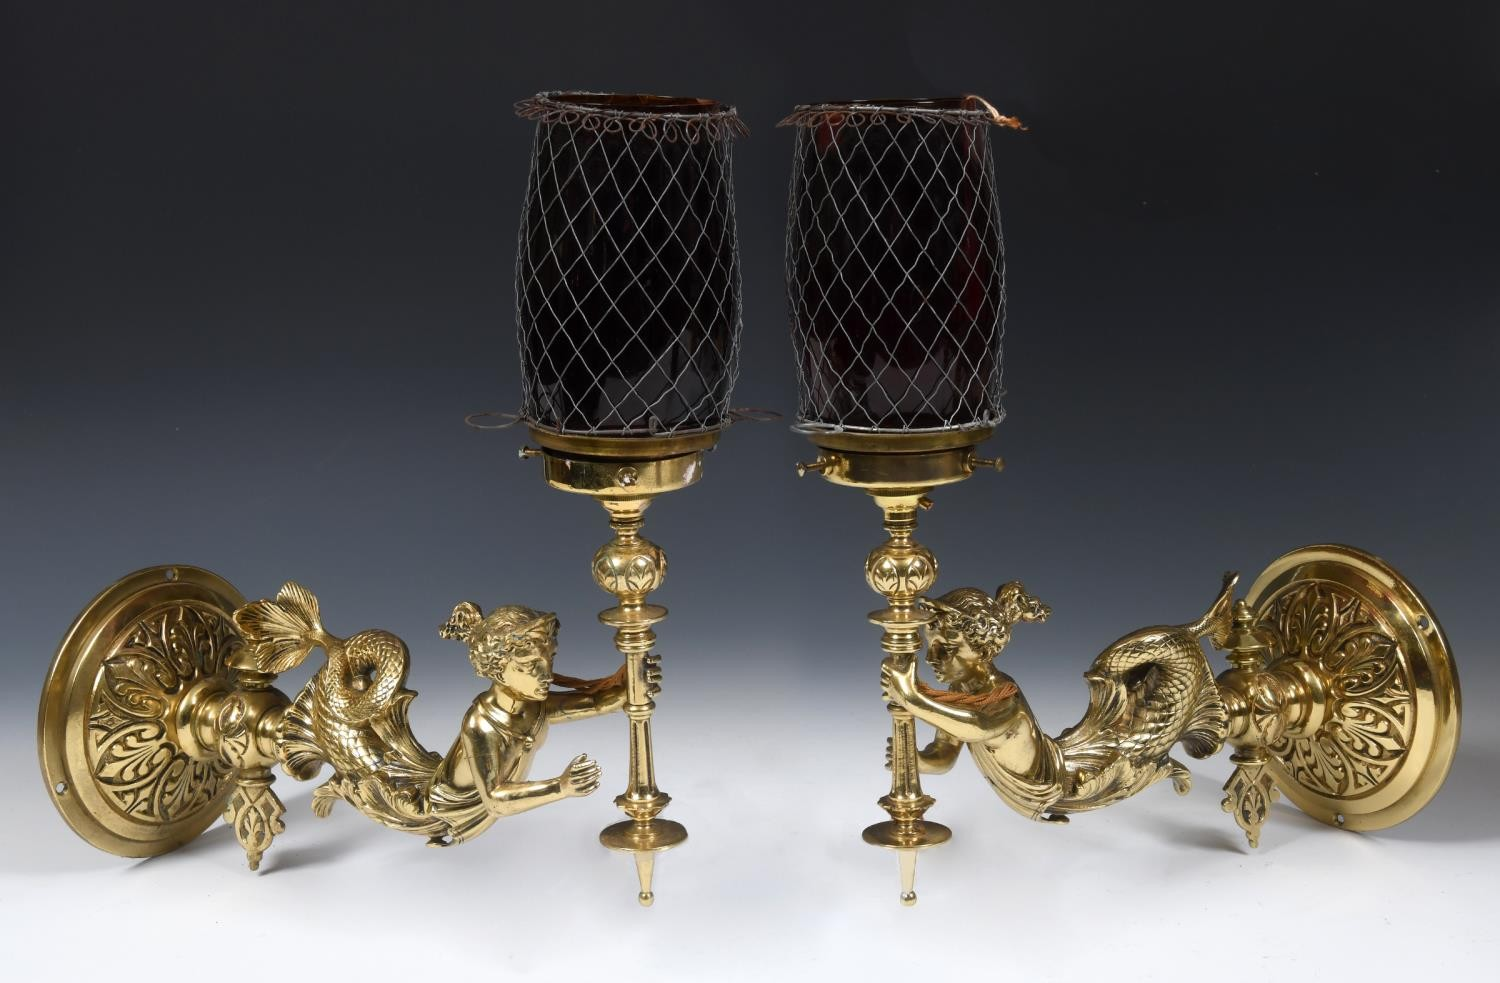 A pair of late 19th/early 20th century brass gas lamps, in the form of mermaids holding torches,